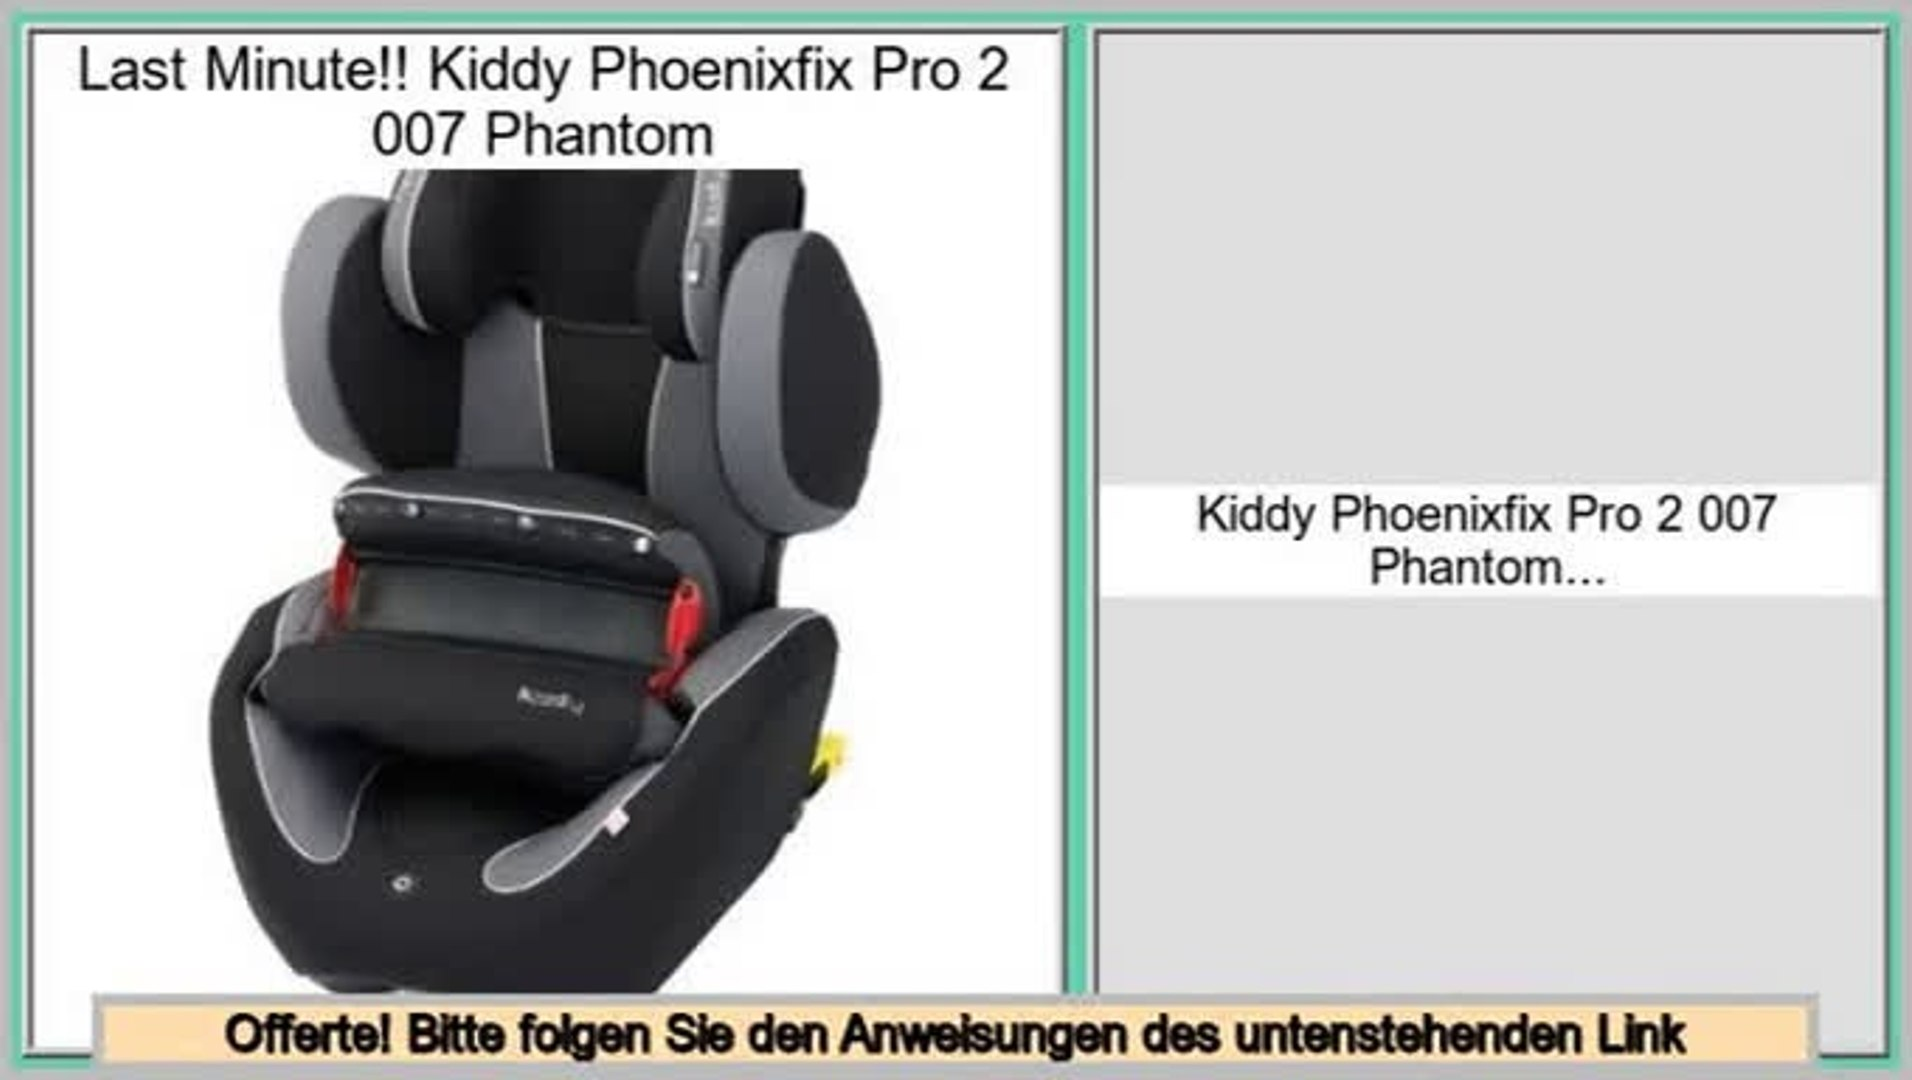 Kindersitz Kiddy Discovery Pro Pauschalangebote Kiddy Phoenixfix Pro 2 007 Phantom